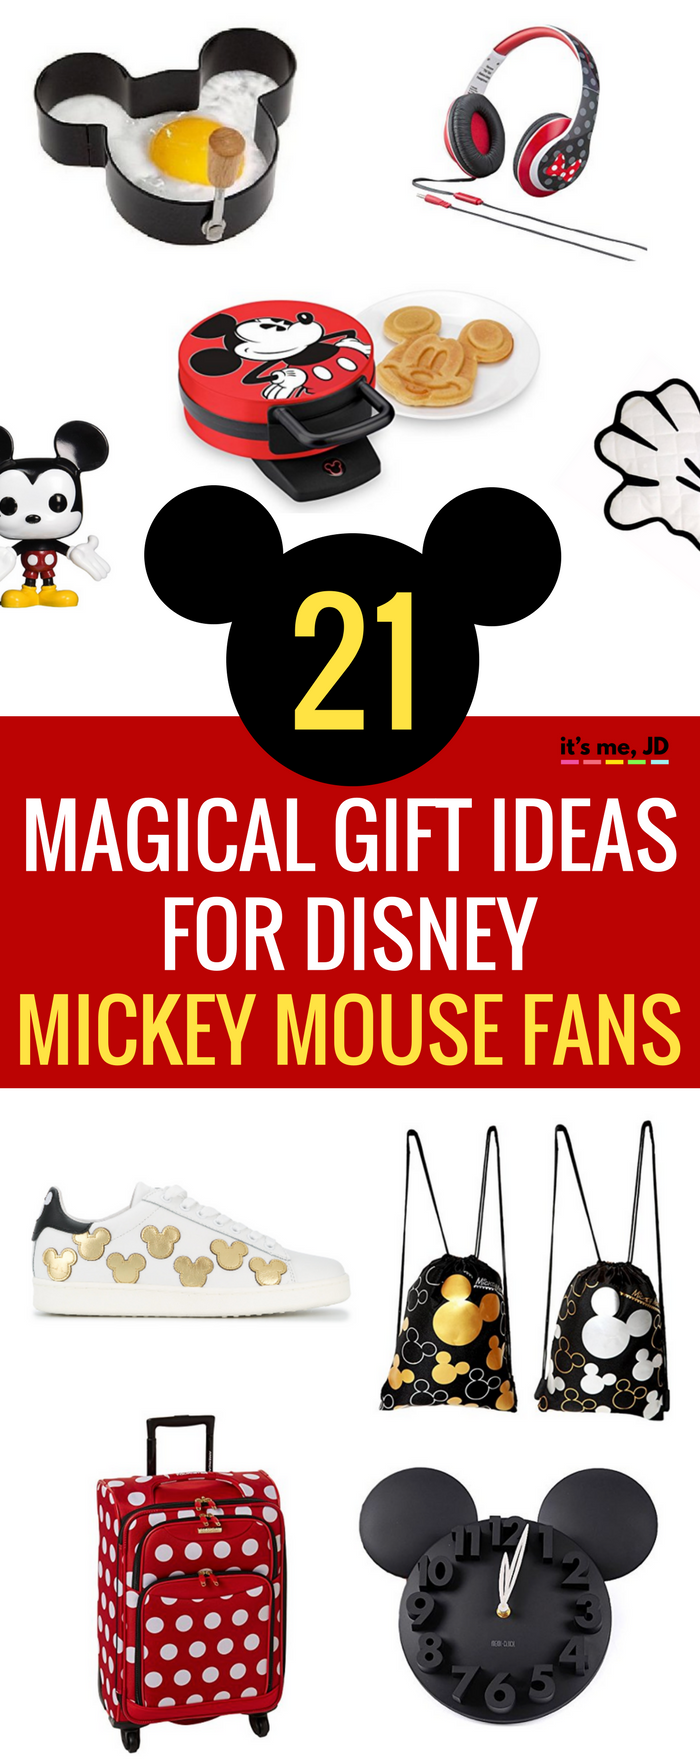 #Disney #mickeymouse 21 Magical Gift Ideas for Disney Mickey Mouse Fans